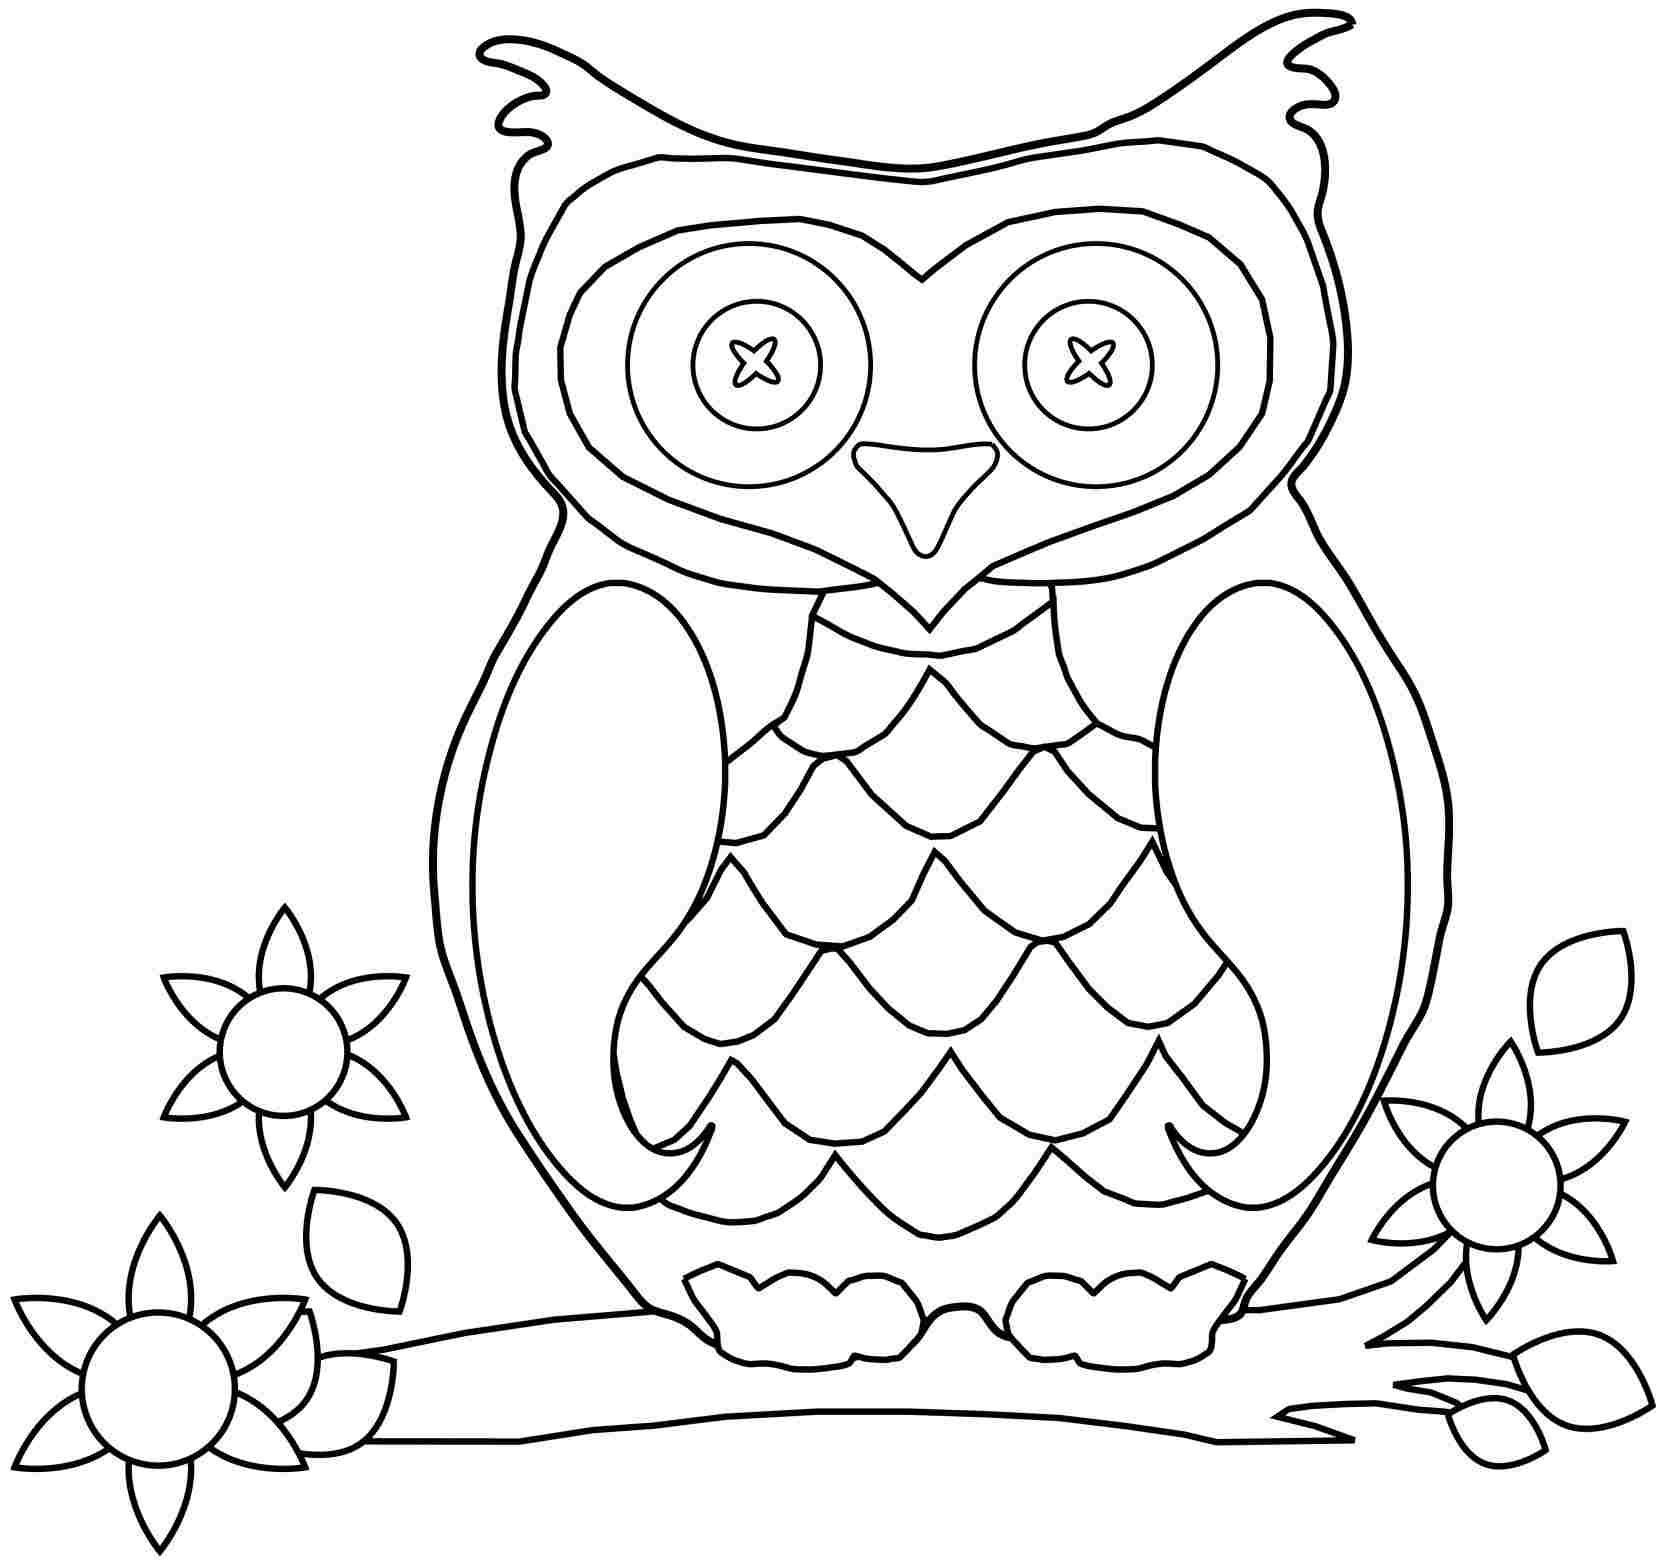 Owl Coloring Pages Free  Coloring Home